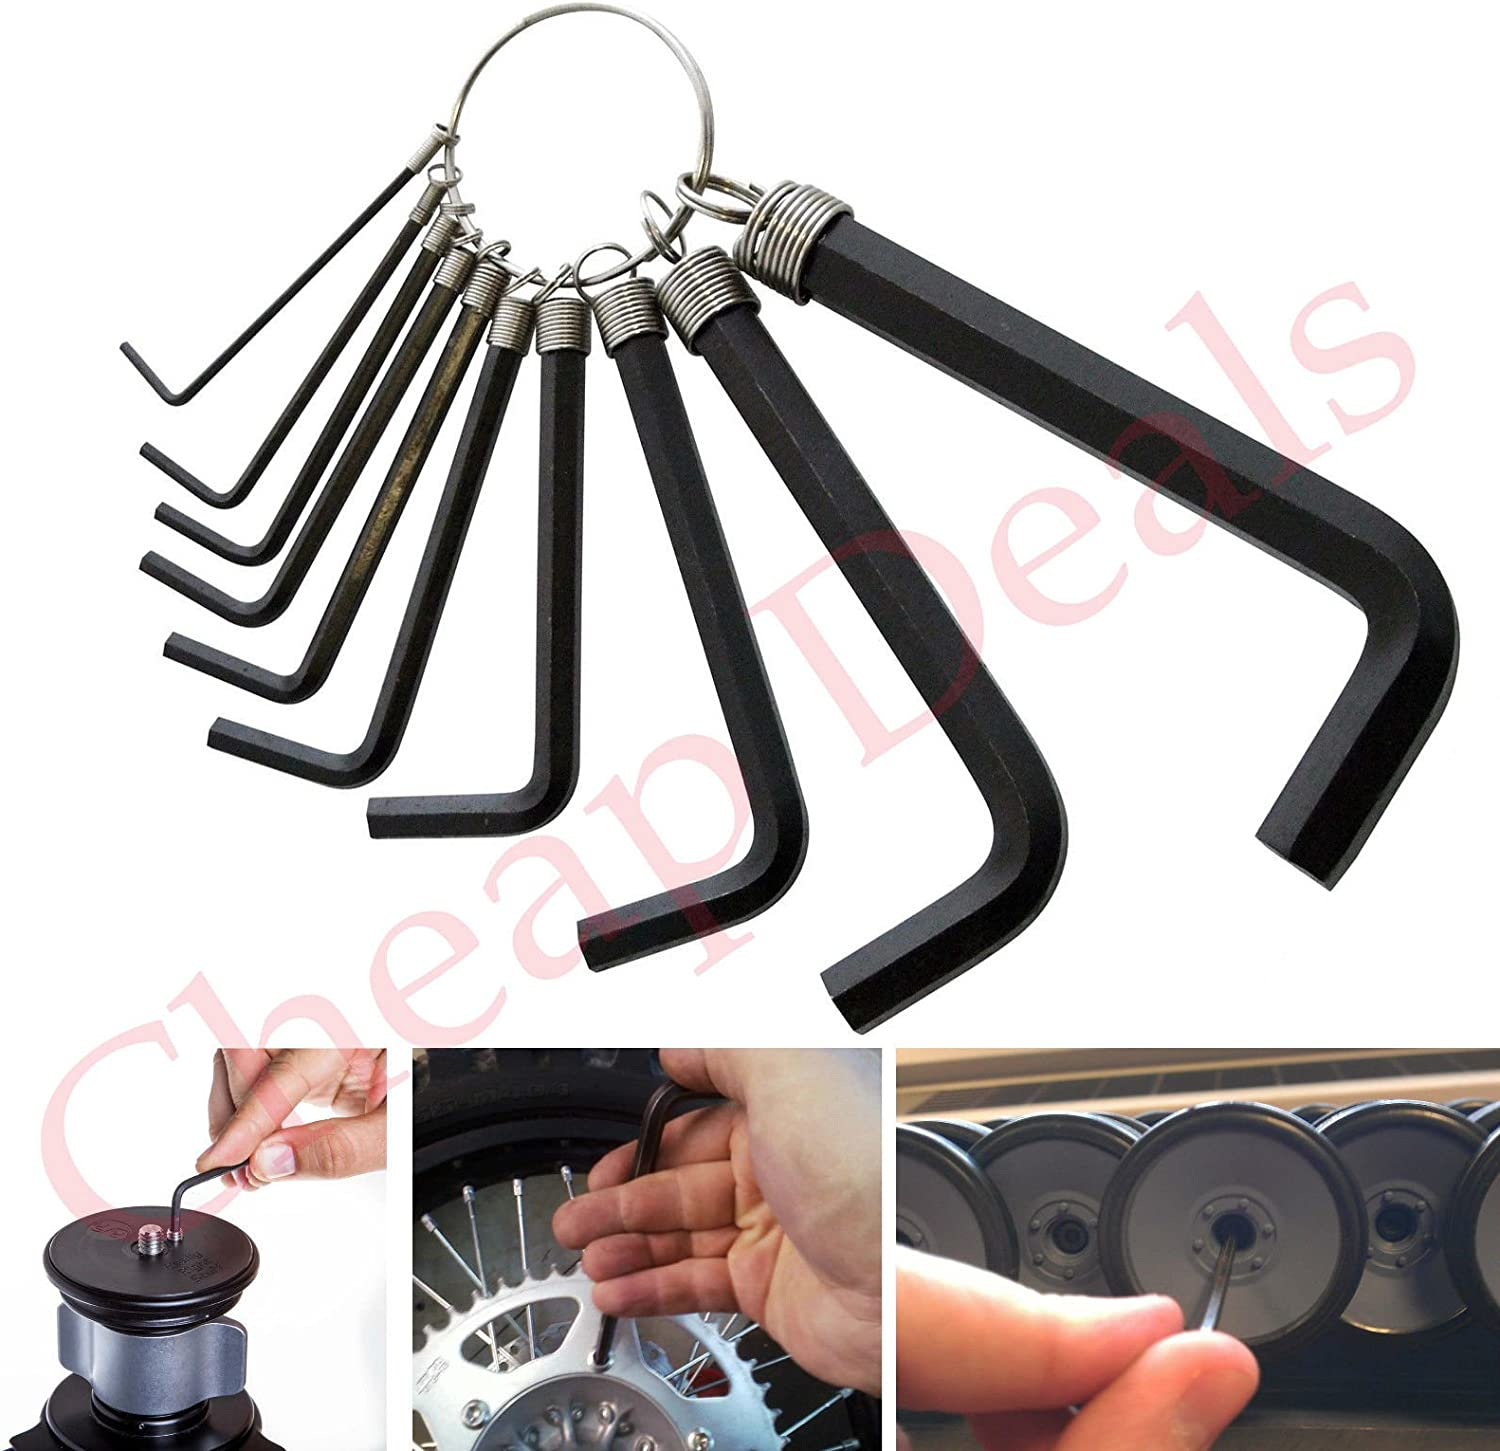 SystemsEleven 10PC METRIC HEX ALAN KEY WRENCH SET 1.5mm To 10mm WITH NEW ALLEN KEY RING